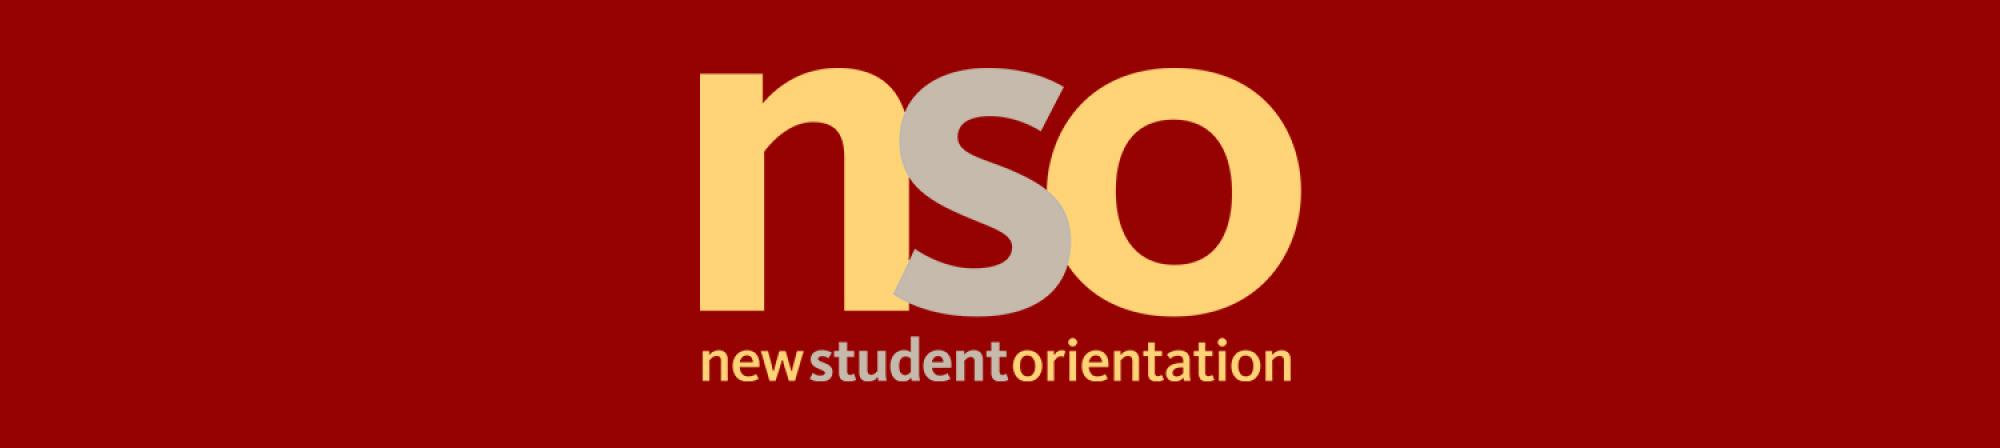 nso logo with a maroon background